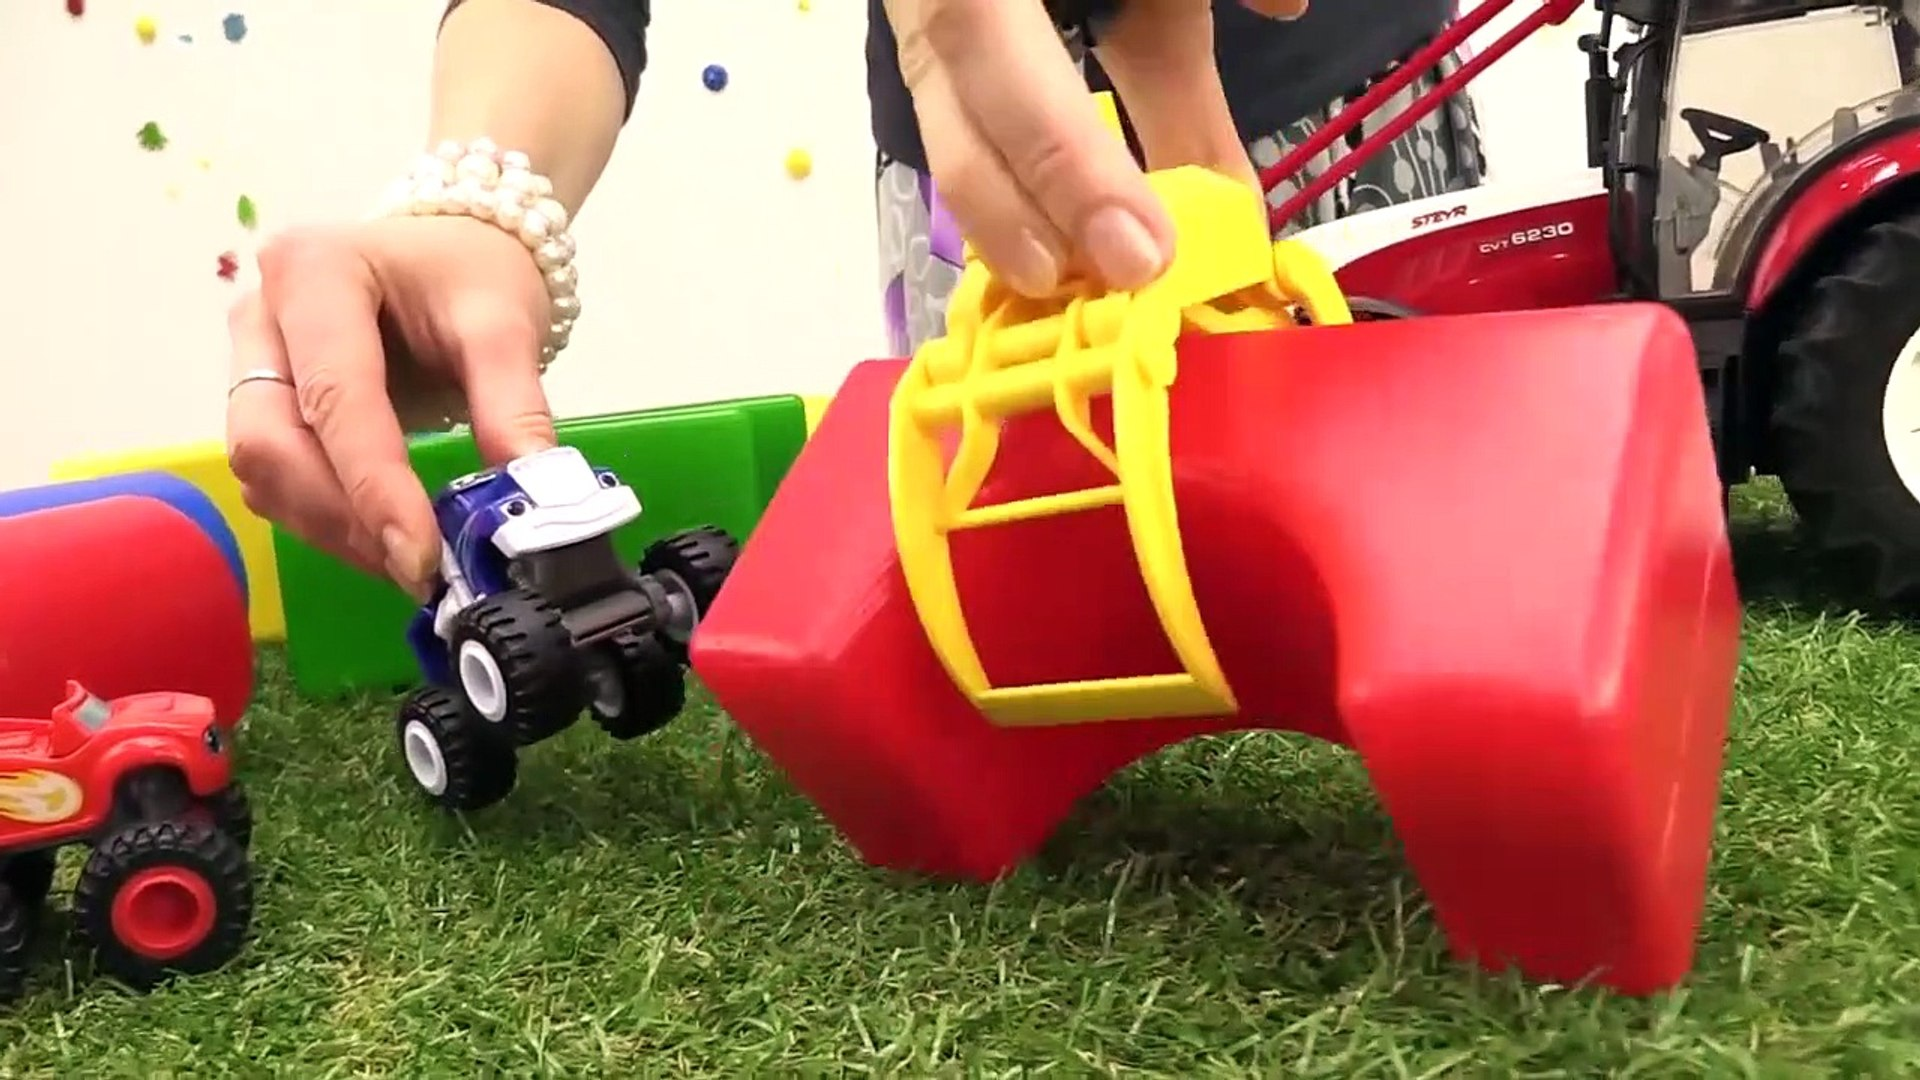 SMELLY TOY TRUCKS JUMP! - Toy Trucks stories for kids! Videos for kids - Blaze Toy Cons